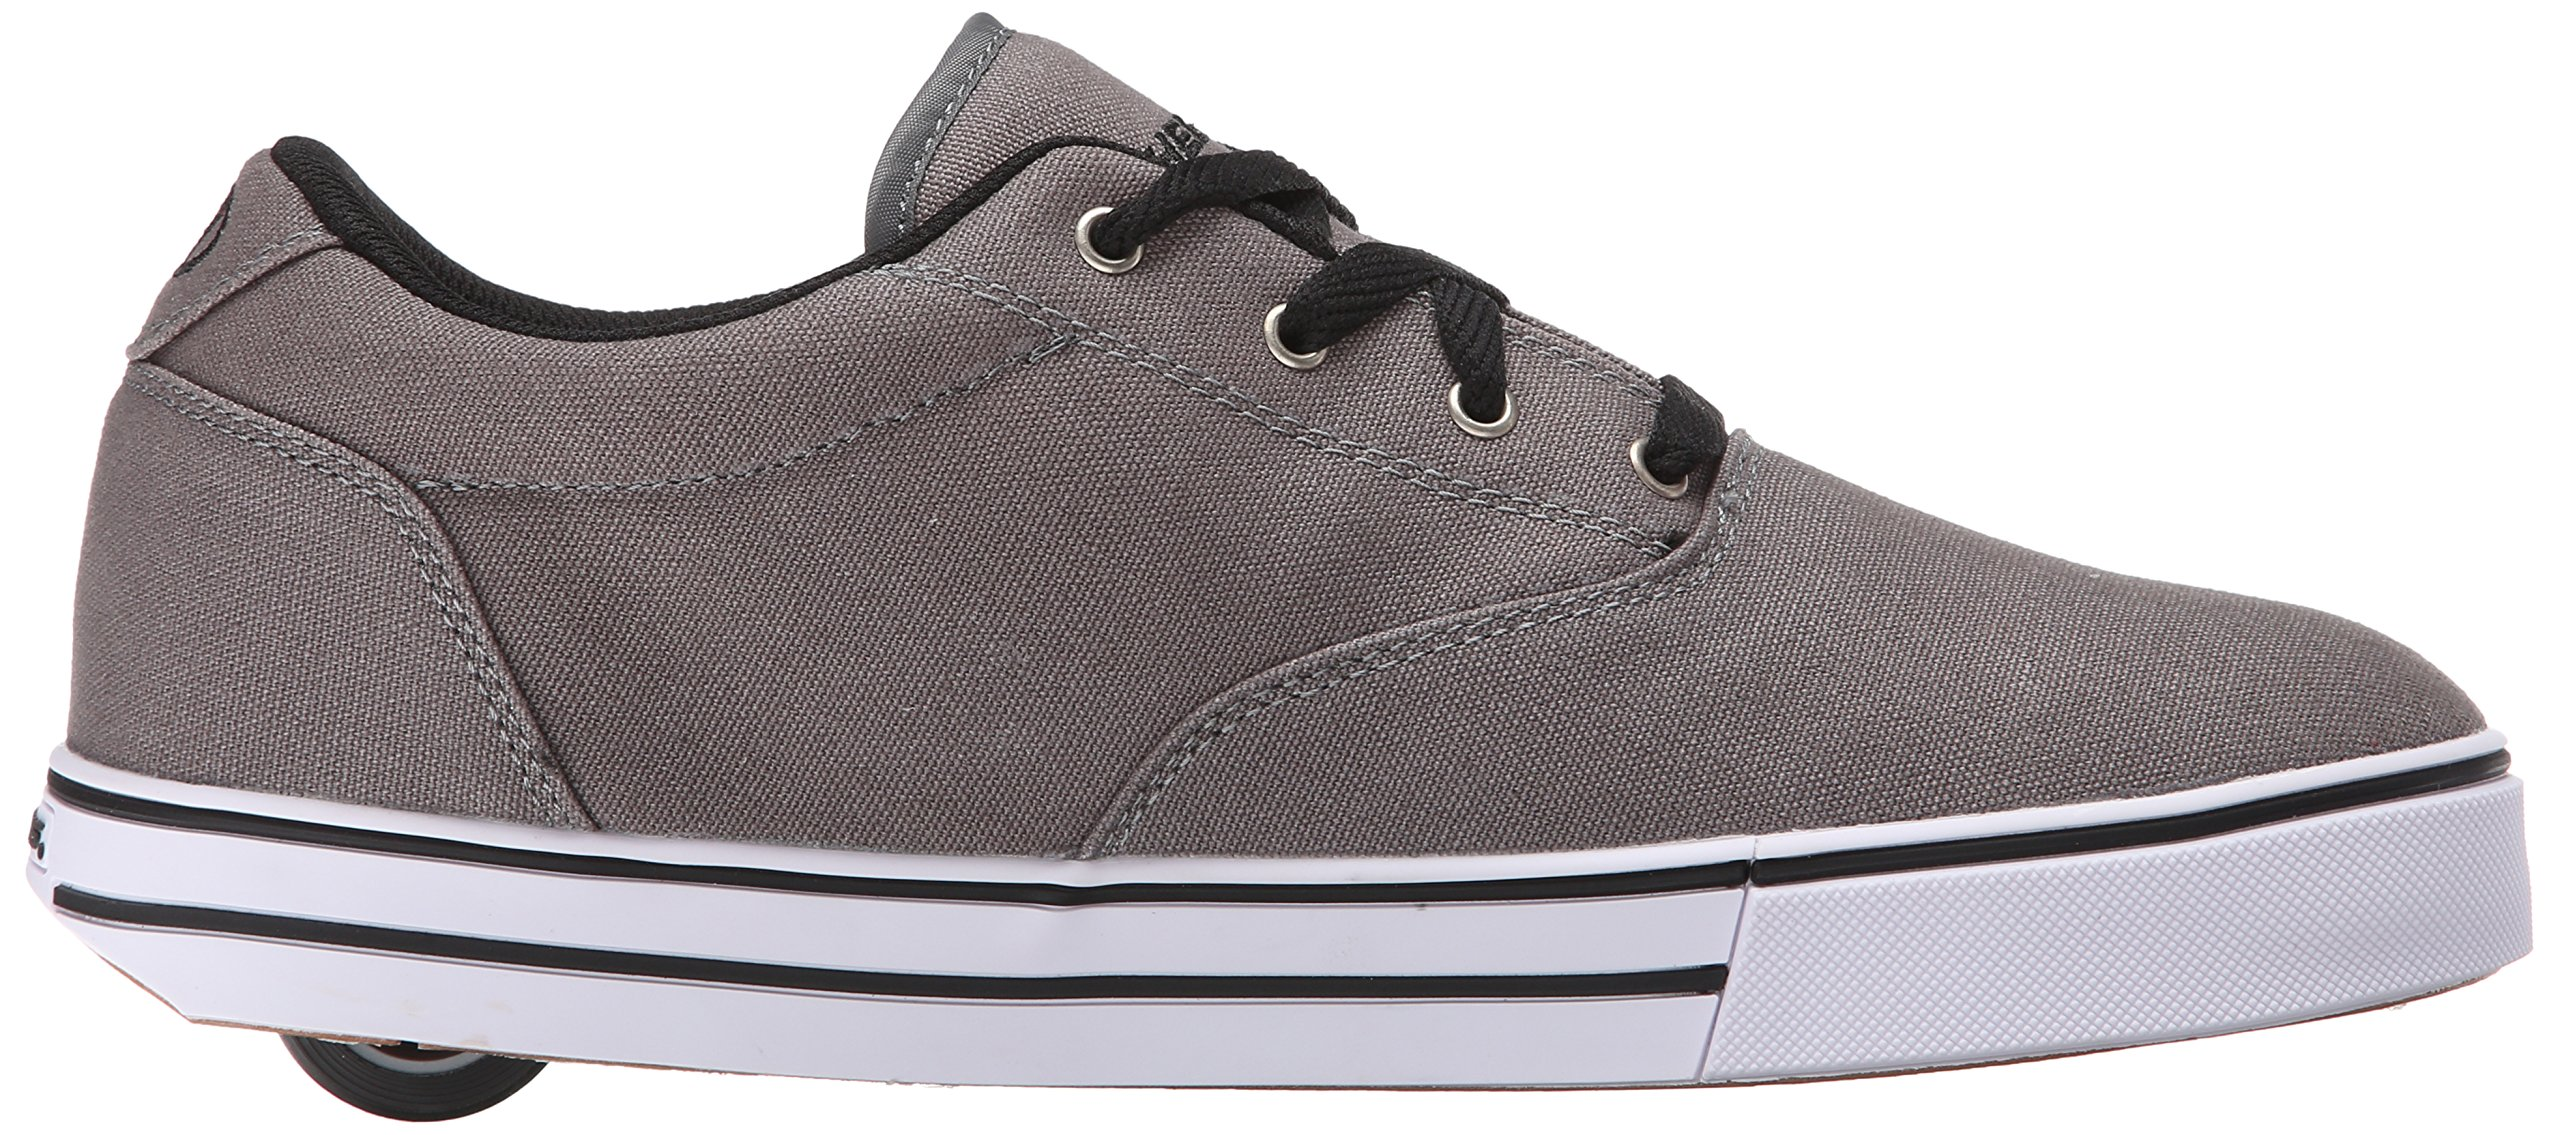 Heelys Men's Launch Fashion Sneaker Grey 10 M US by Heelys (Image #7)